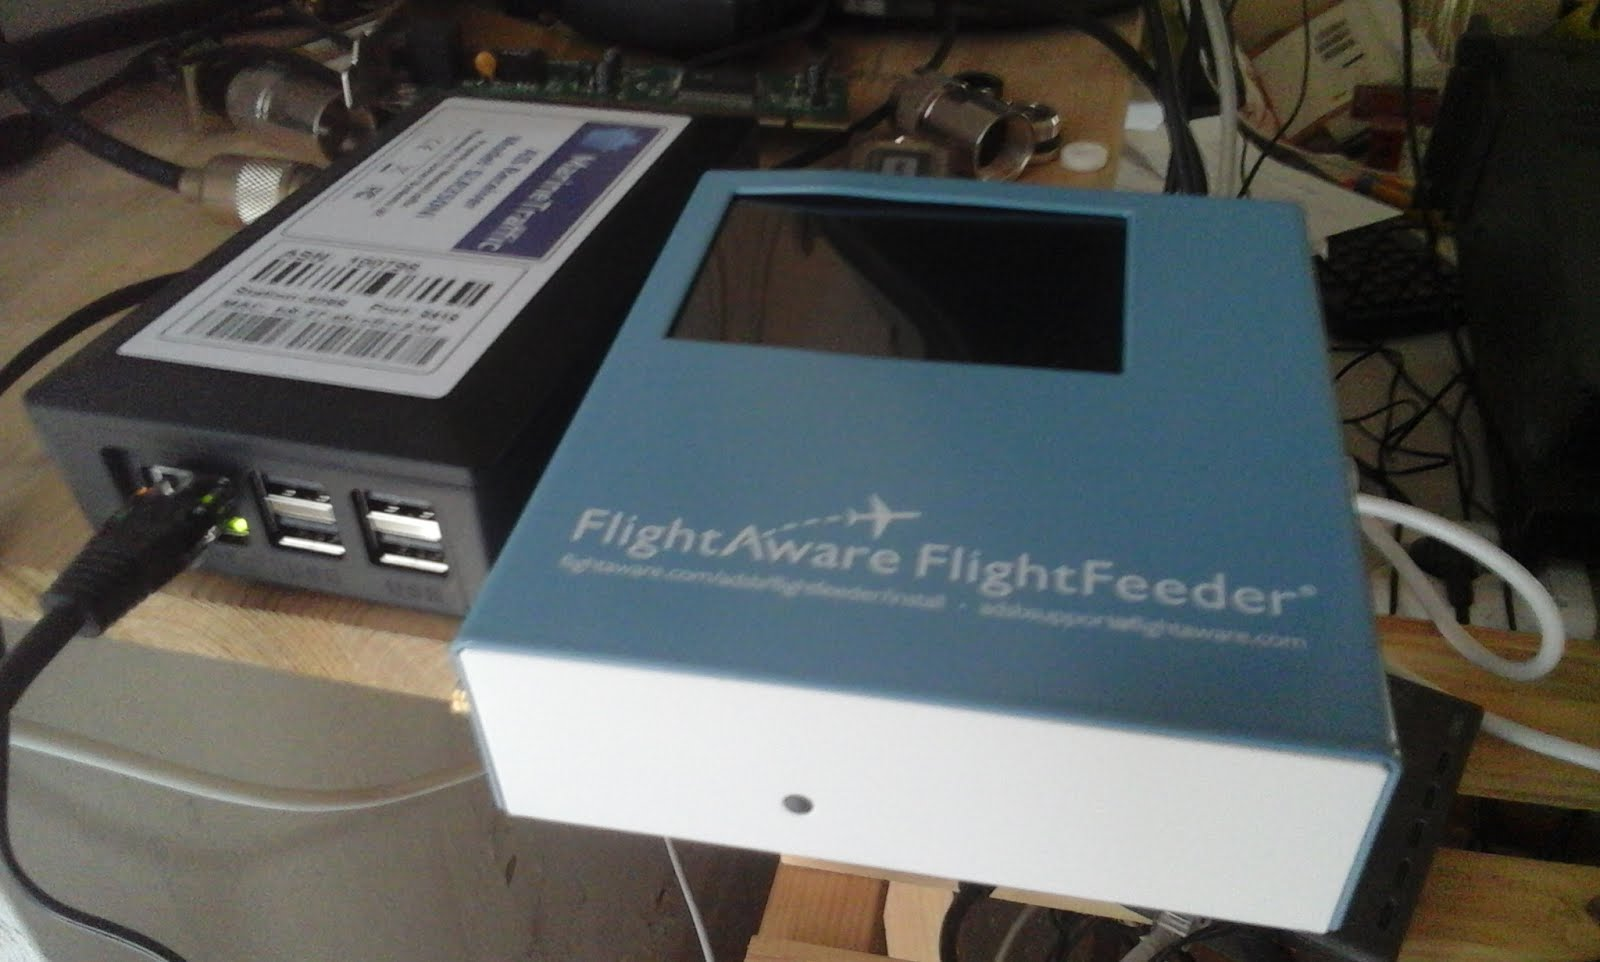 rx Ais -rx Flightfeedr ads-b